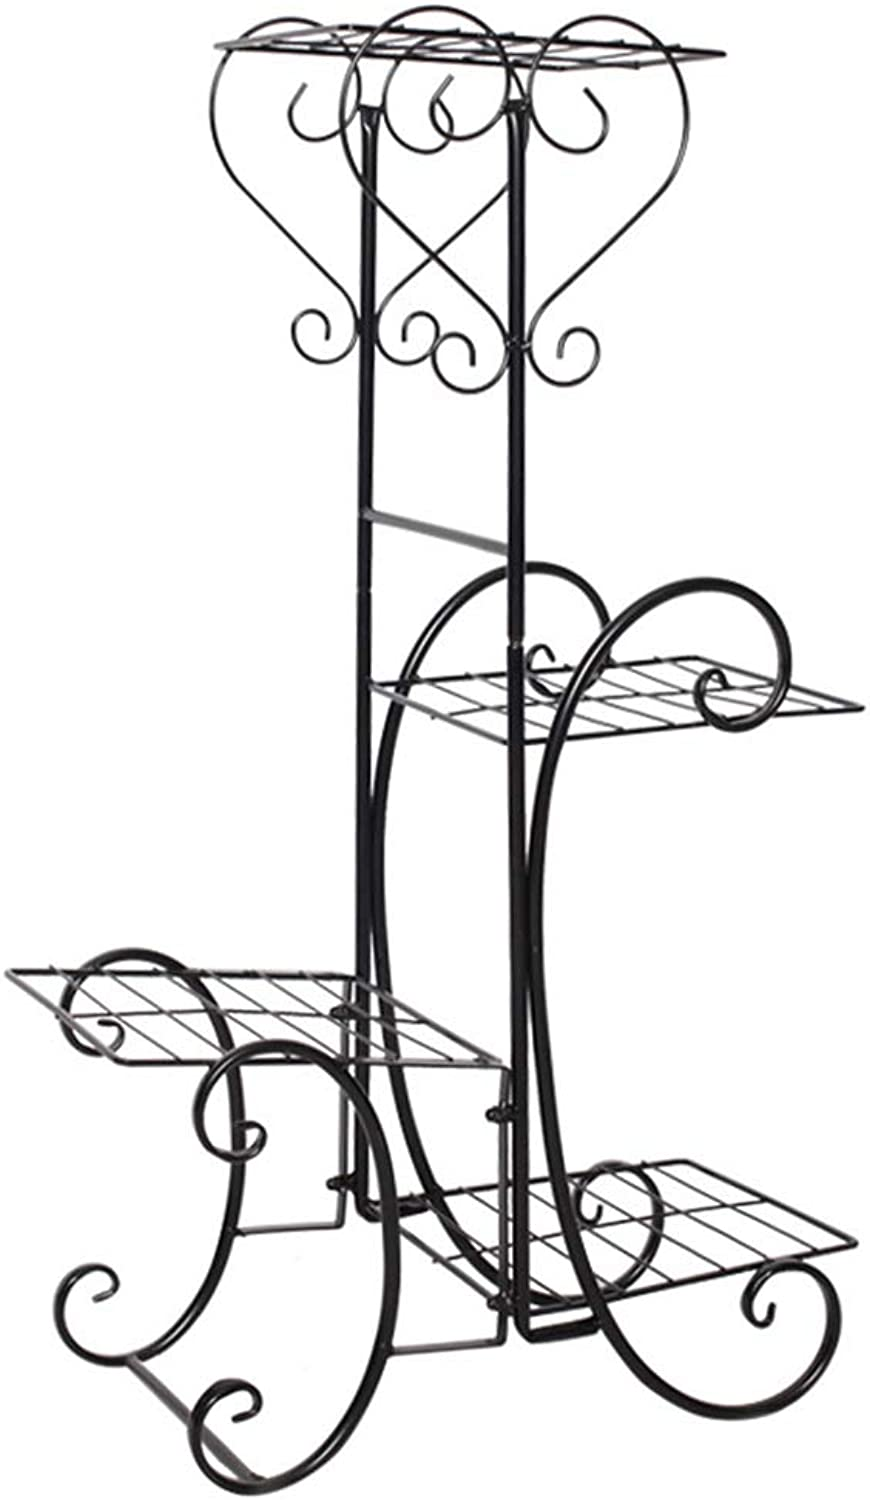 Wrought Iron Plant Stand Four-Layer Shelves for Indoor and Outdoor Flower Pots Floor-Stand is Suitable for A Variety of Plants